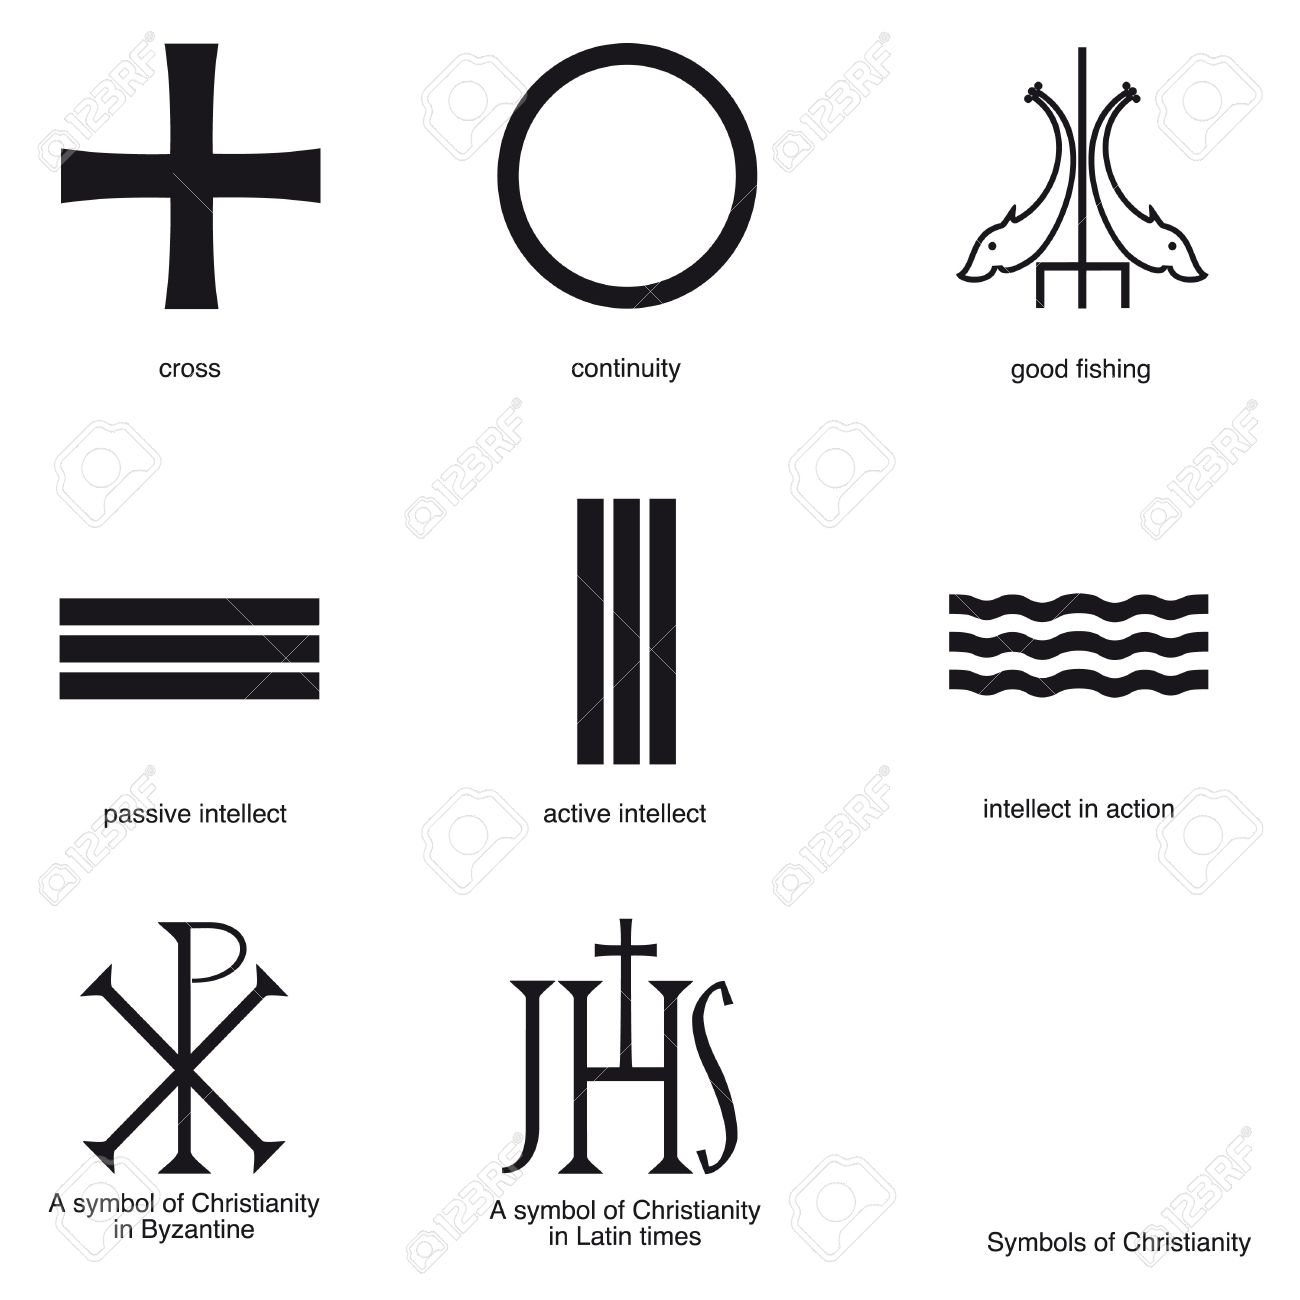 Symbols of ancient christianity royalty free cliparts vectors symbols of ancient christianity stock vector 9667738 biocorpaavc Gallery